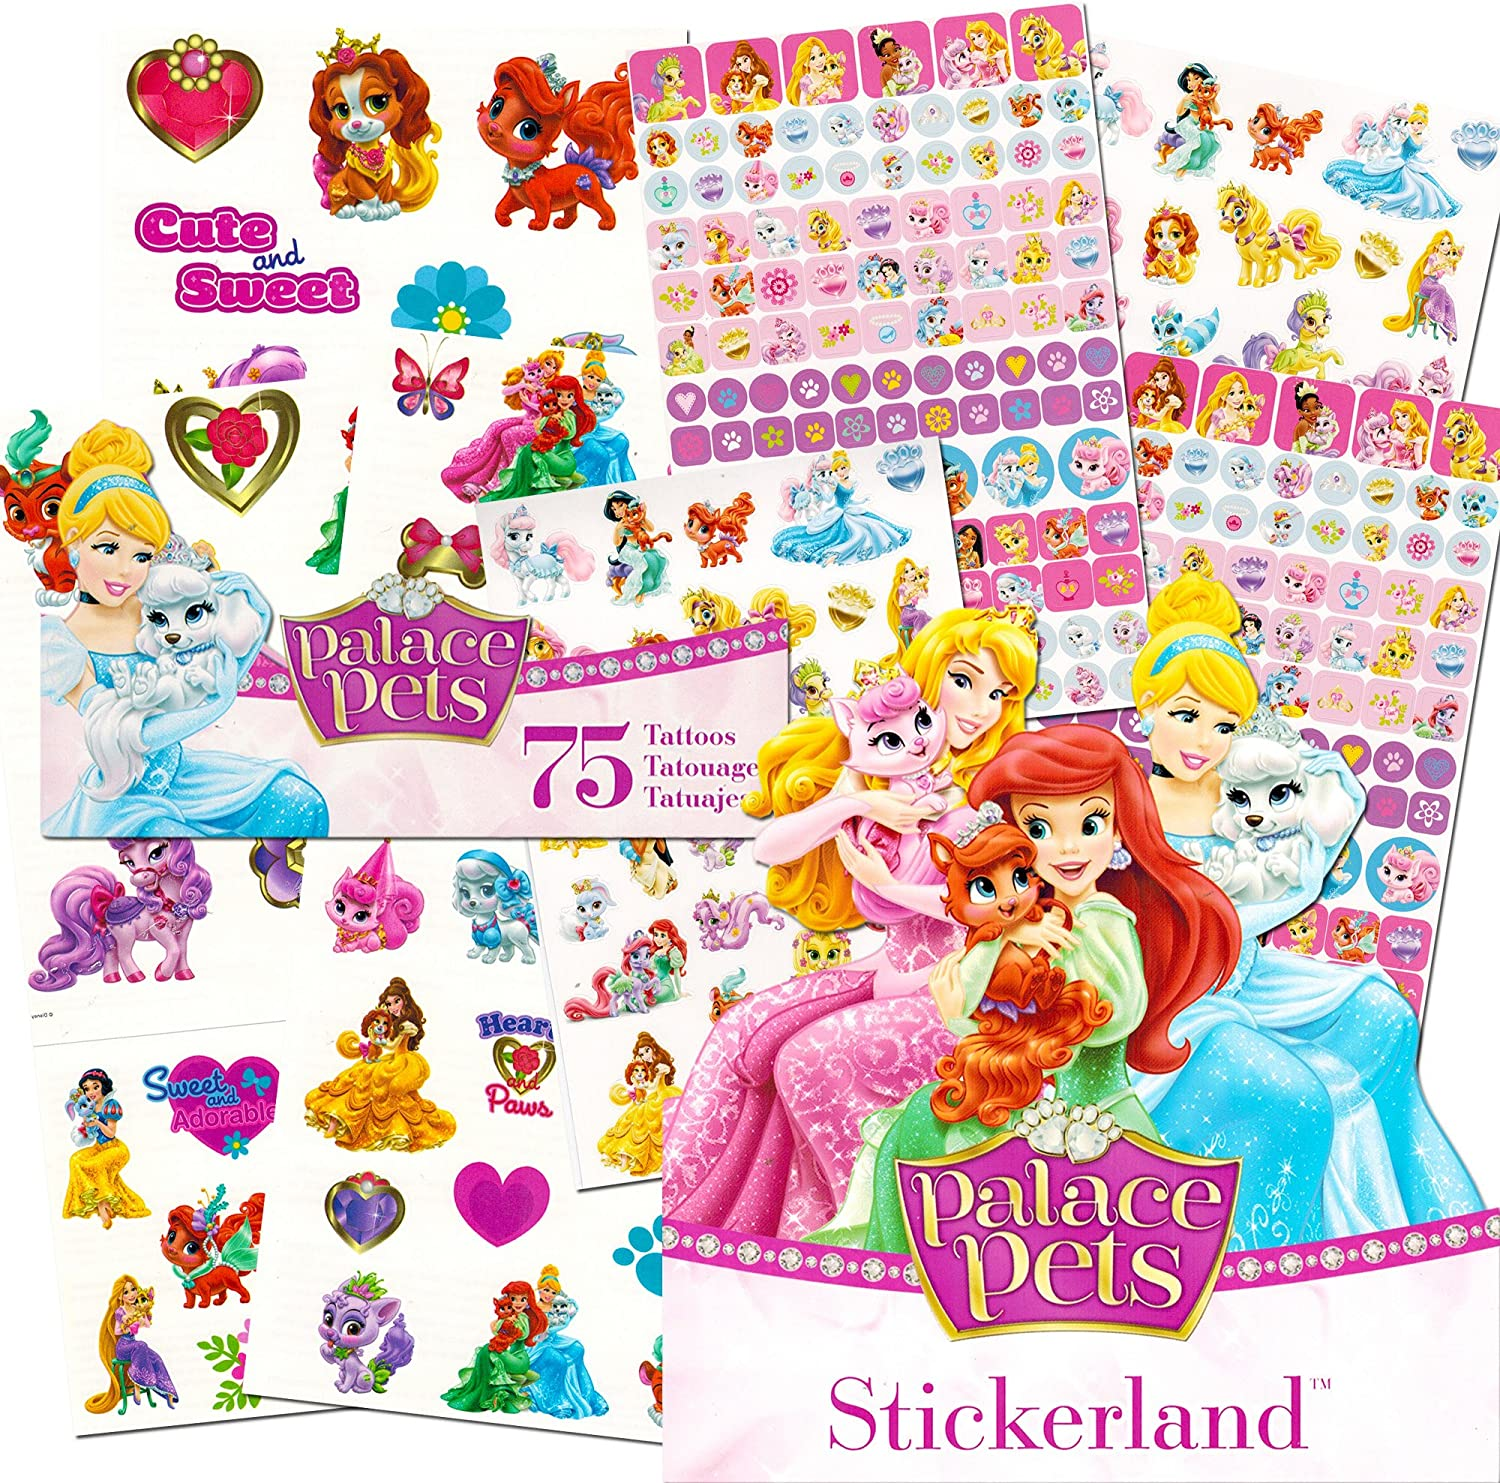 Bundle of 12 Sheets 240 DISNEY PRINCESS Stickers Party Favors Stickerland Stickers plus 2 Specialty Stickers